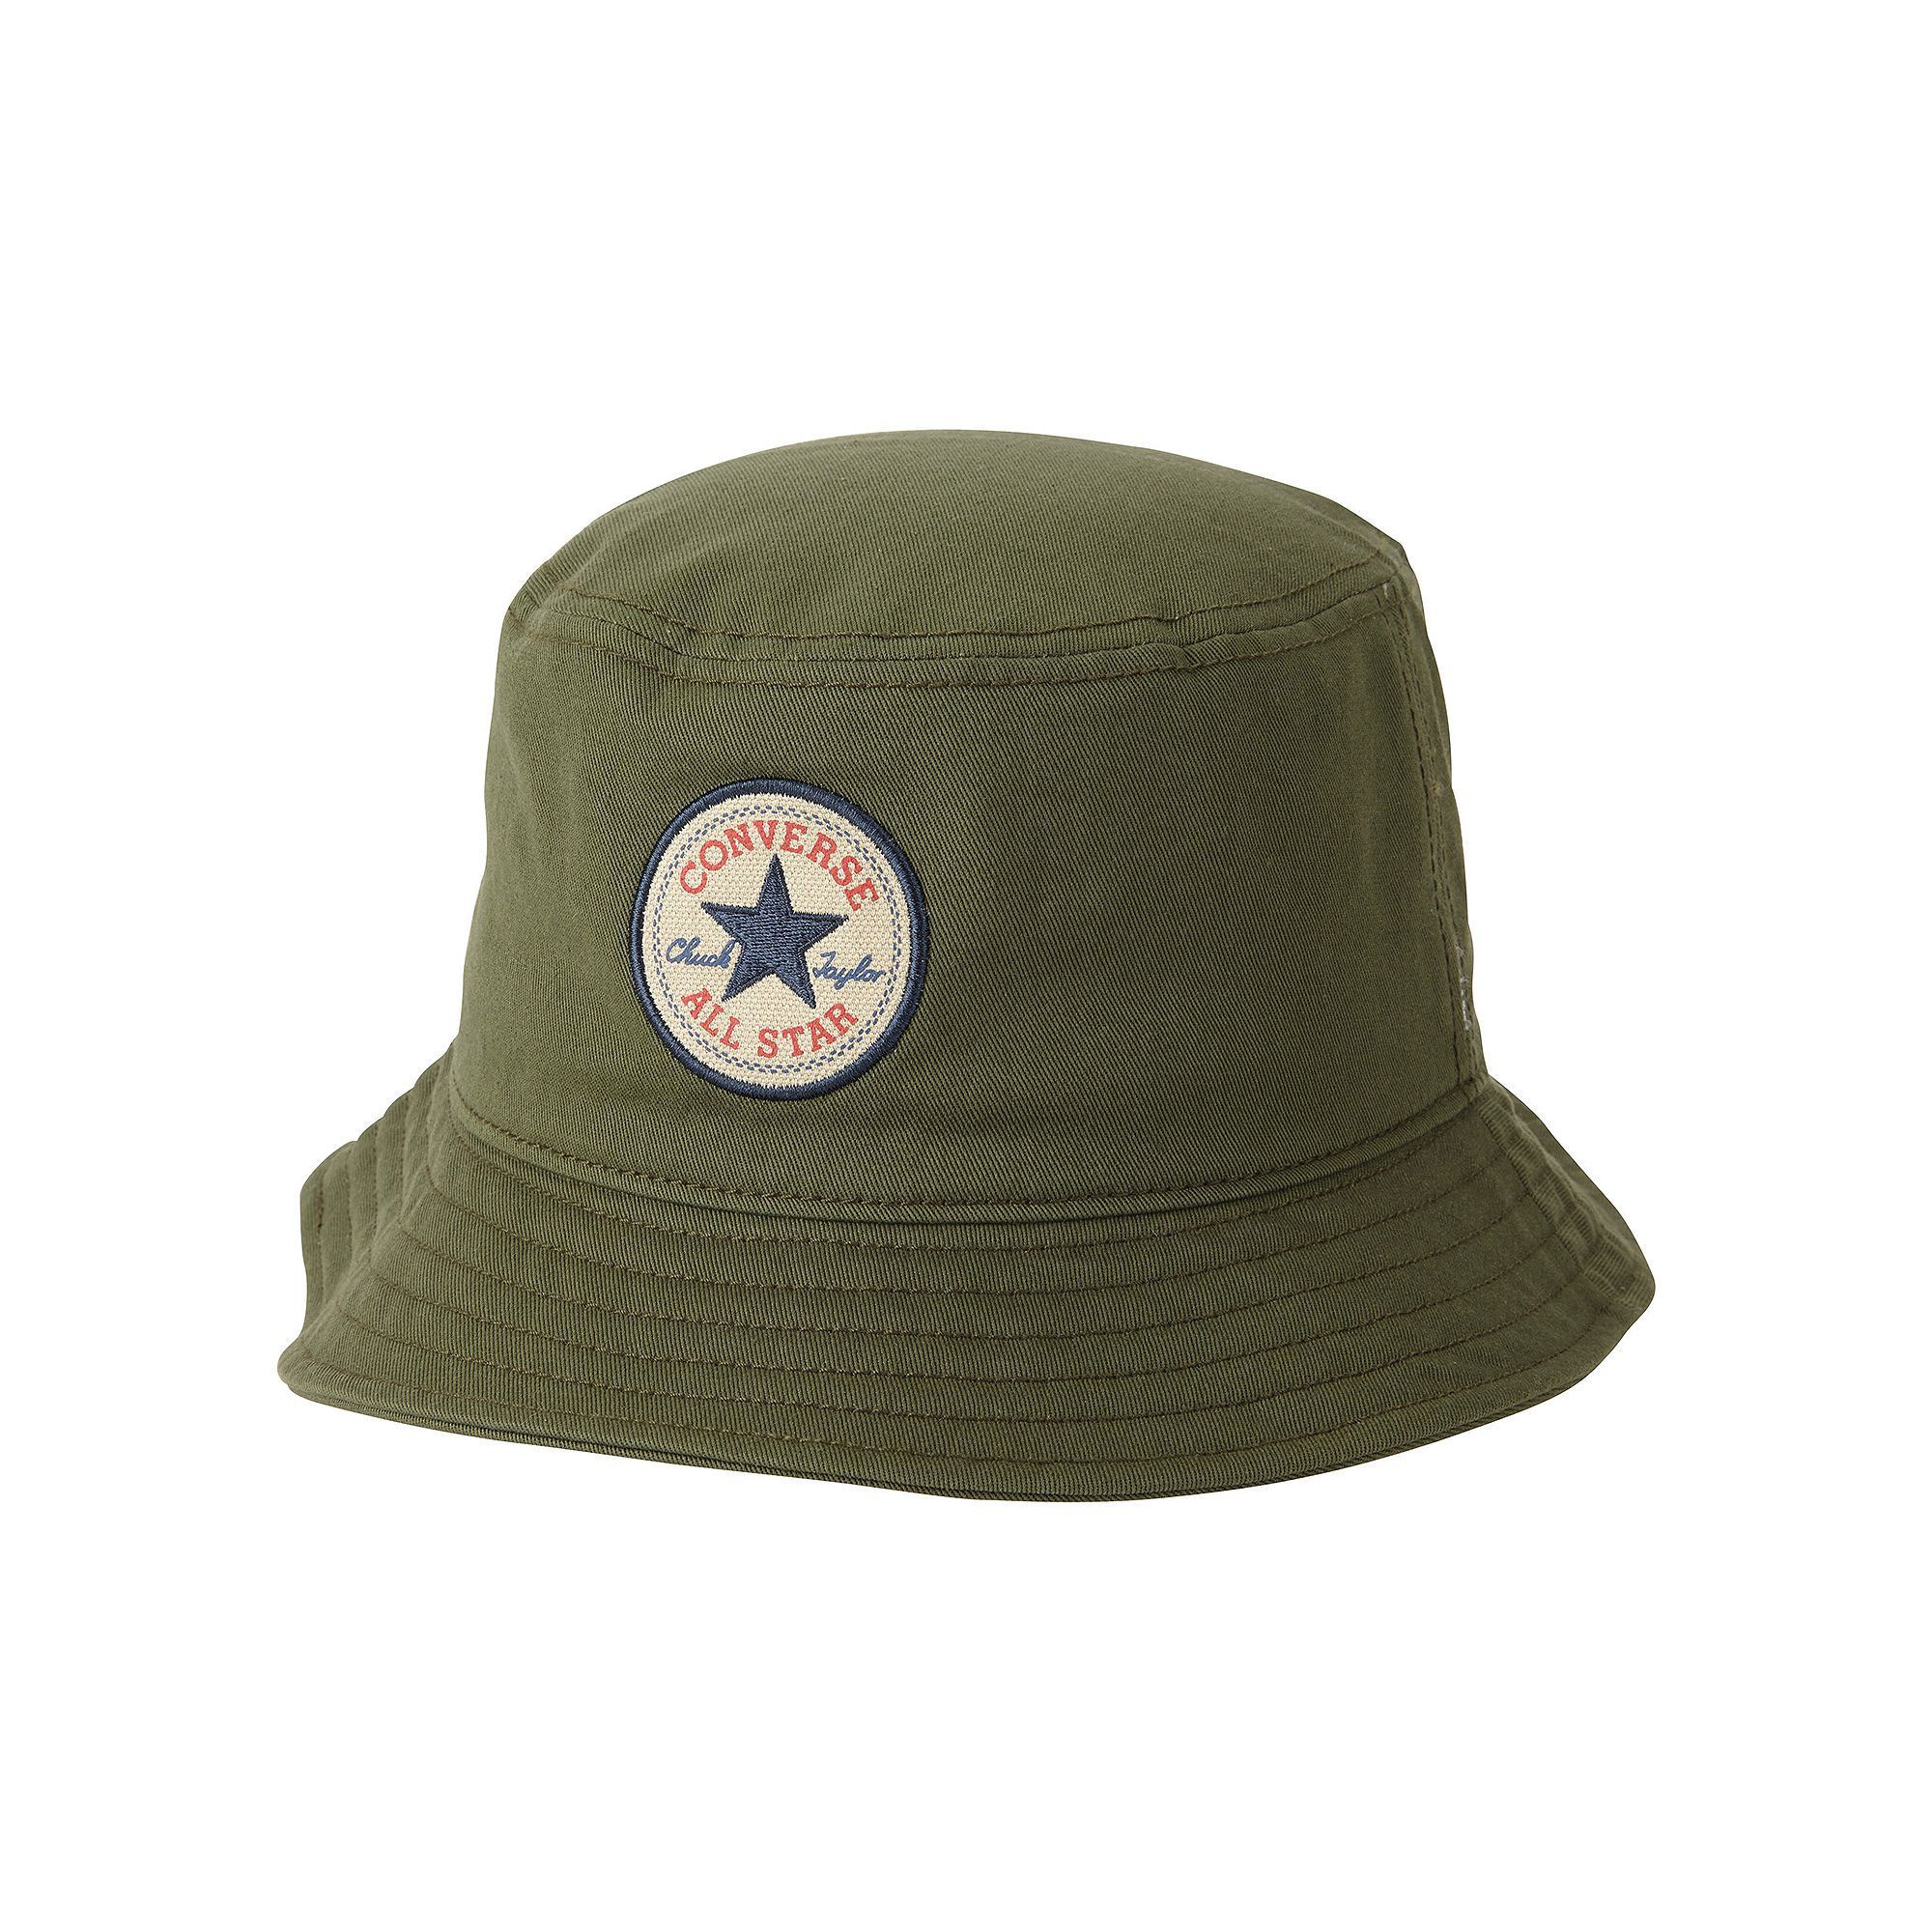 05c07f19e49 Adult Converse All Star Chuck Taylor Core Bucket Hat